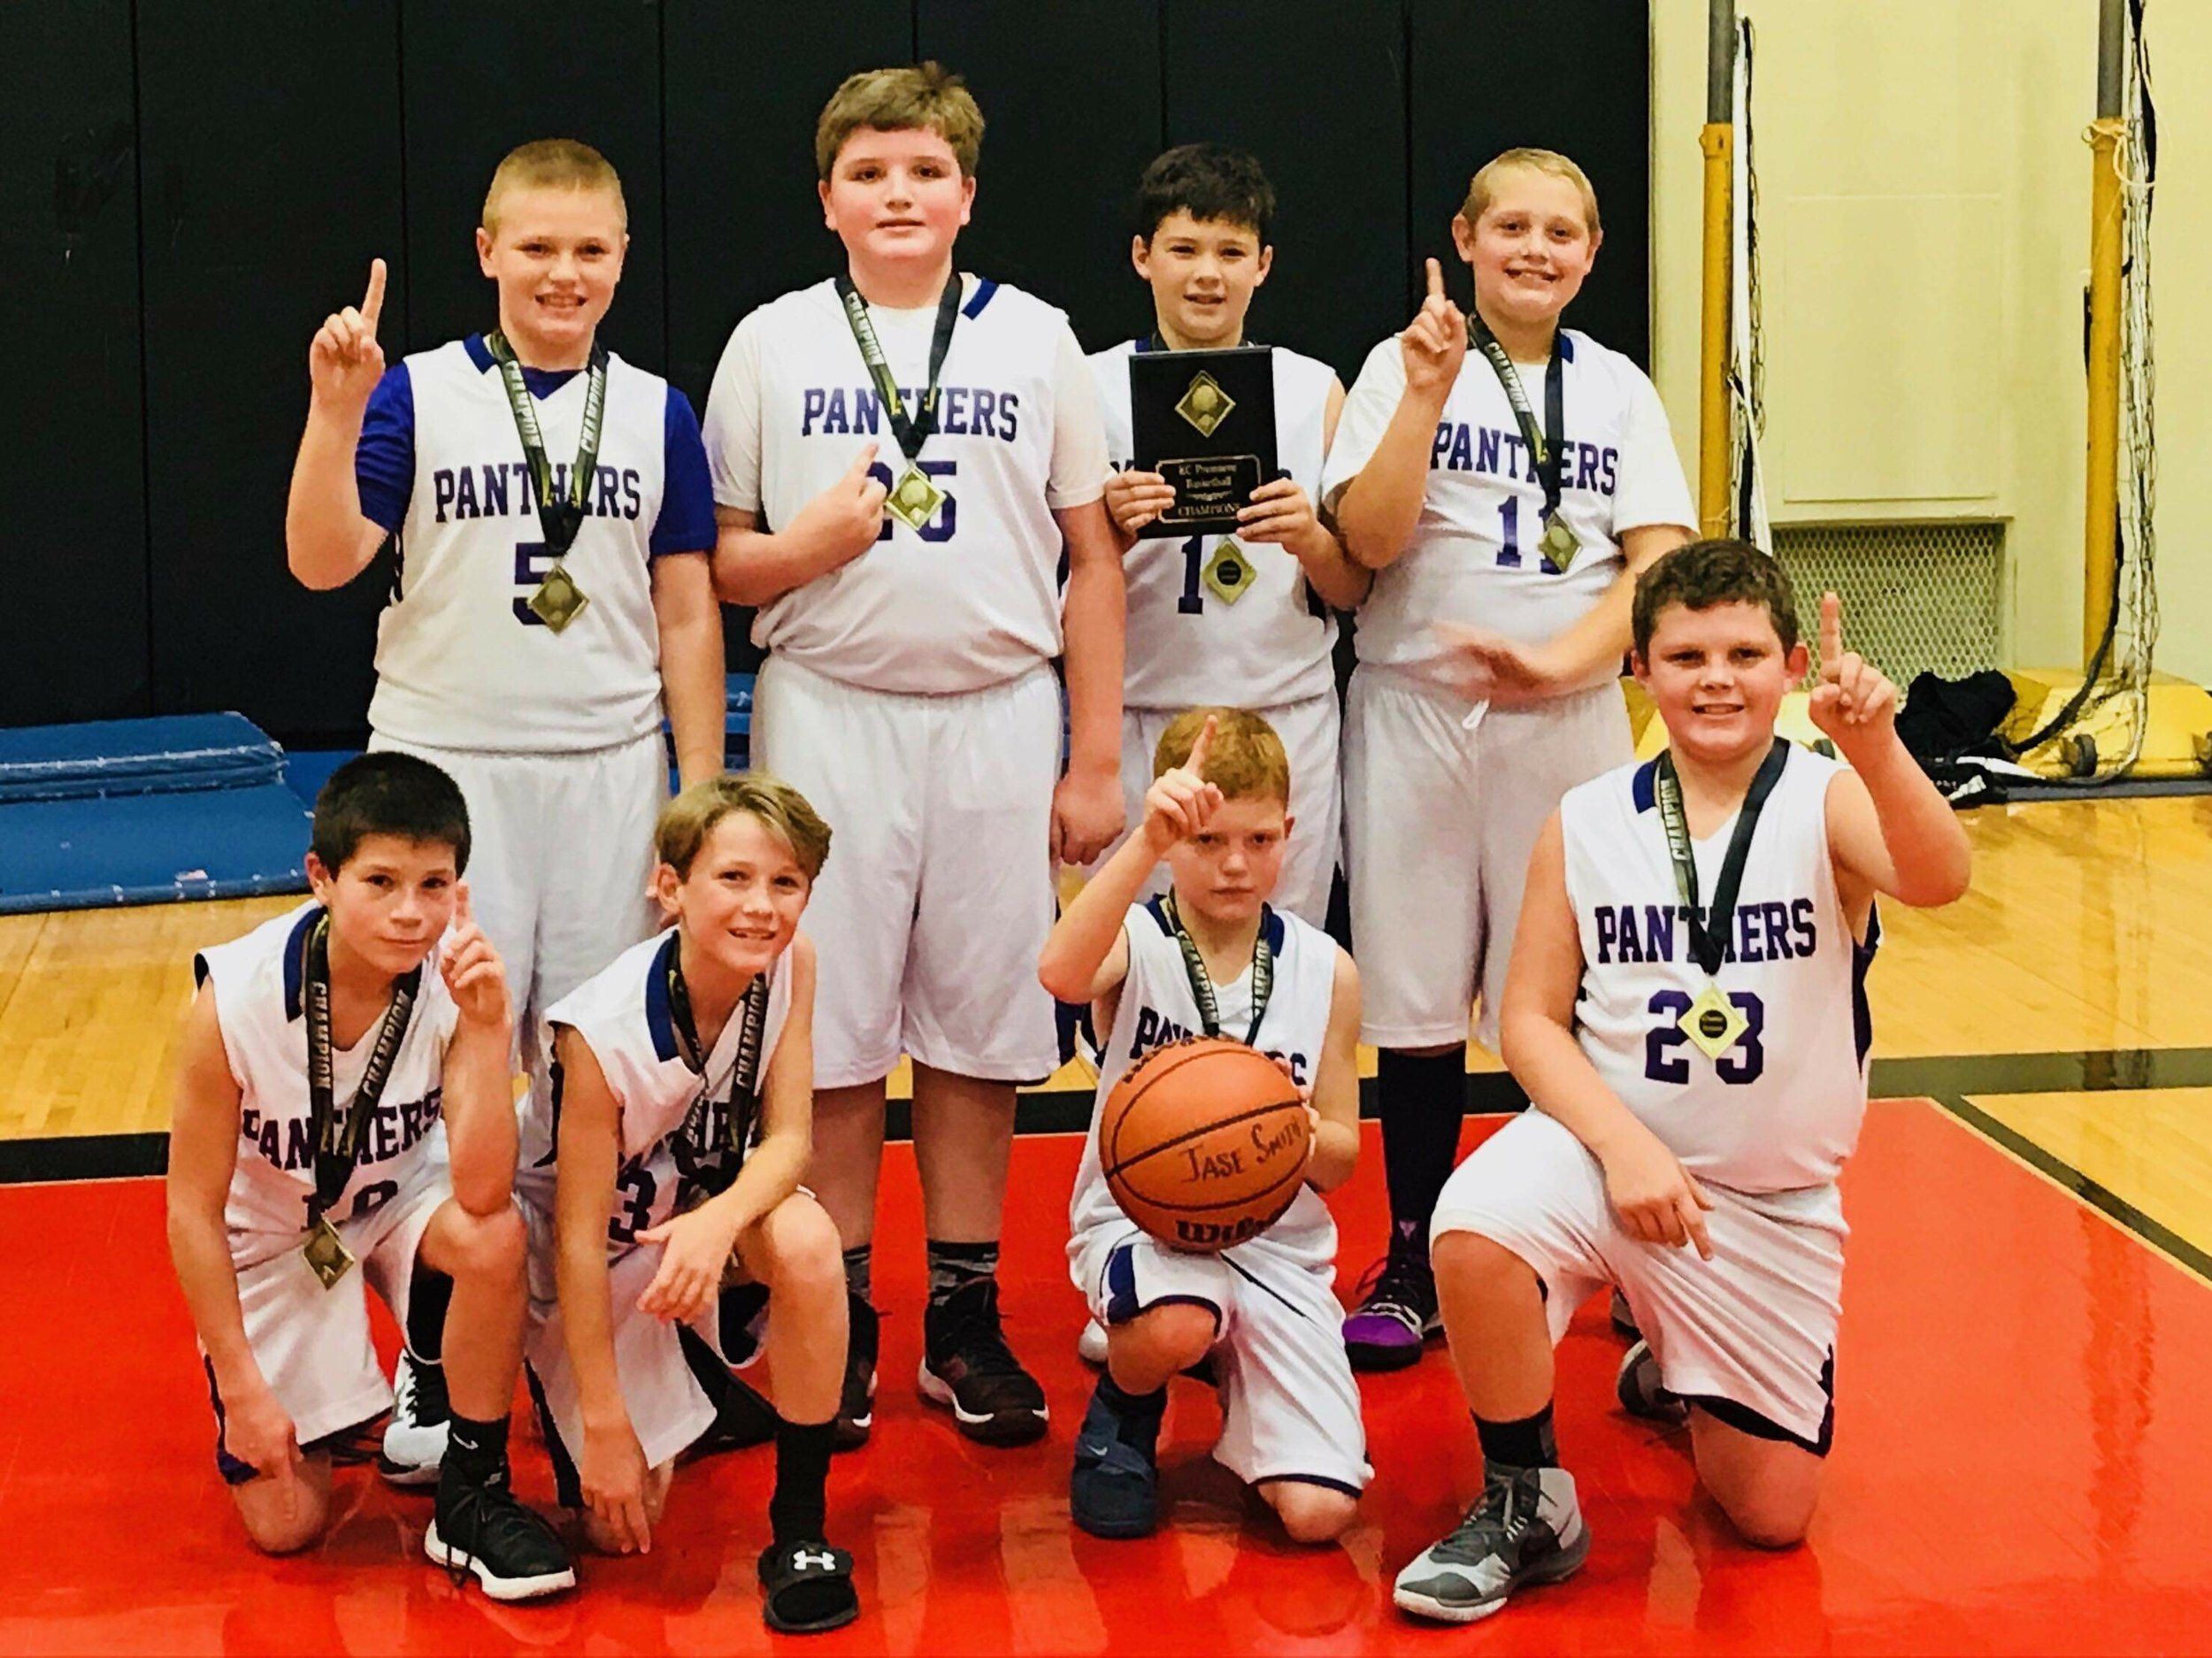 Submitted photo  The North Platte fifth-grade basketball team won first place at Hoopstock held Jan. 25-27 in Savannah. The tournament title pushed the team's record to 16-5. Pictured are, front row from left: Gus French, Collin Kersten, Jase Smith and Parker Seckel. Back row from left: Dylan Armstrong, Spencer Hyde, Brenden Matt and Chase Harper. The team is coached by Karl Matt and Emilee Buckler.